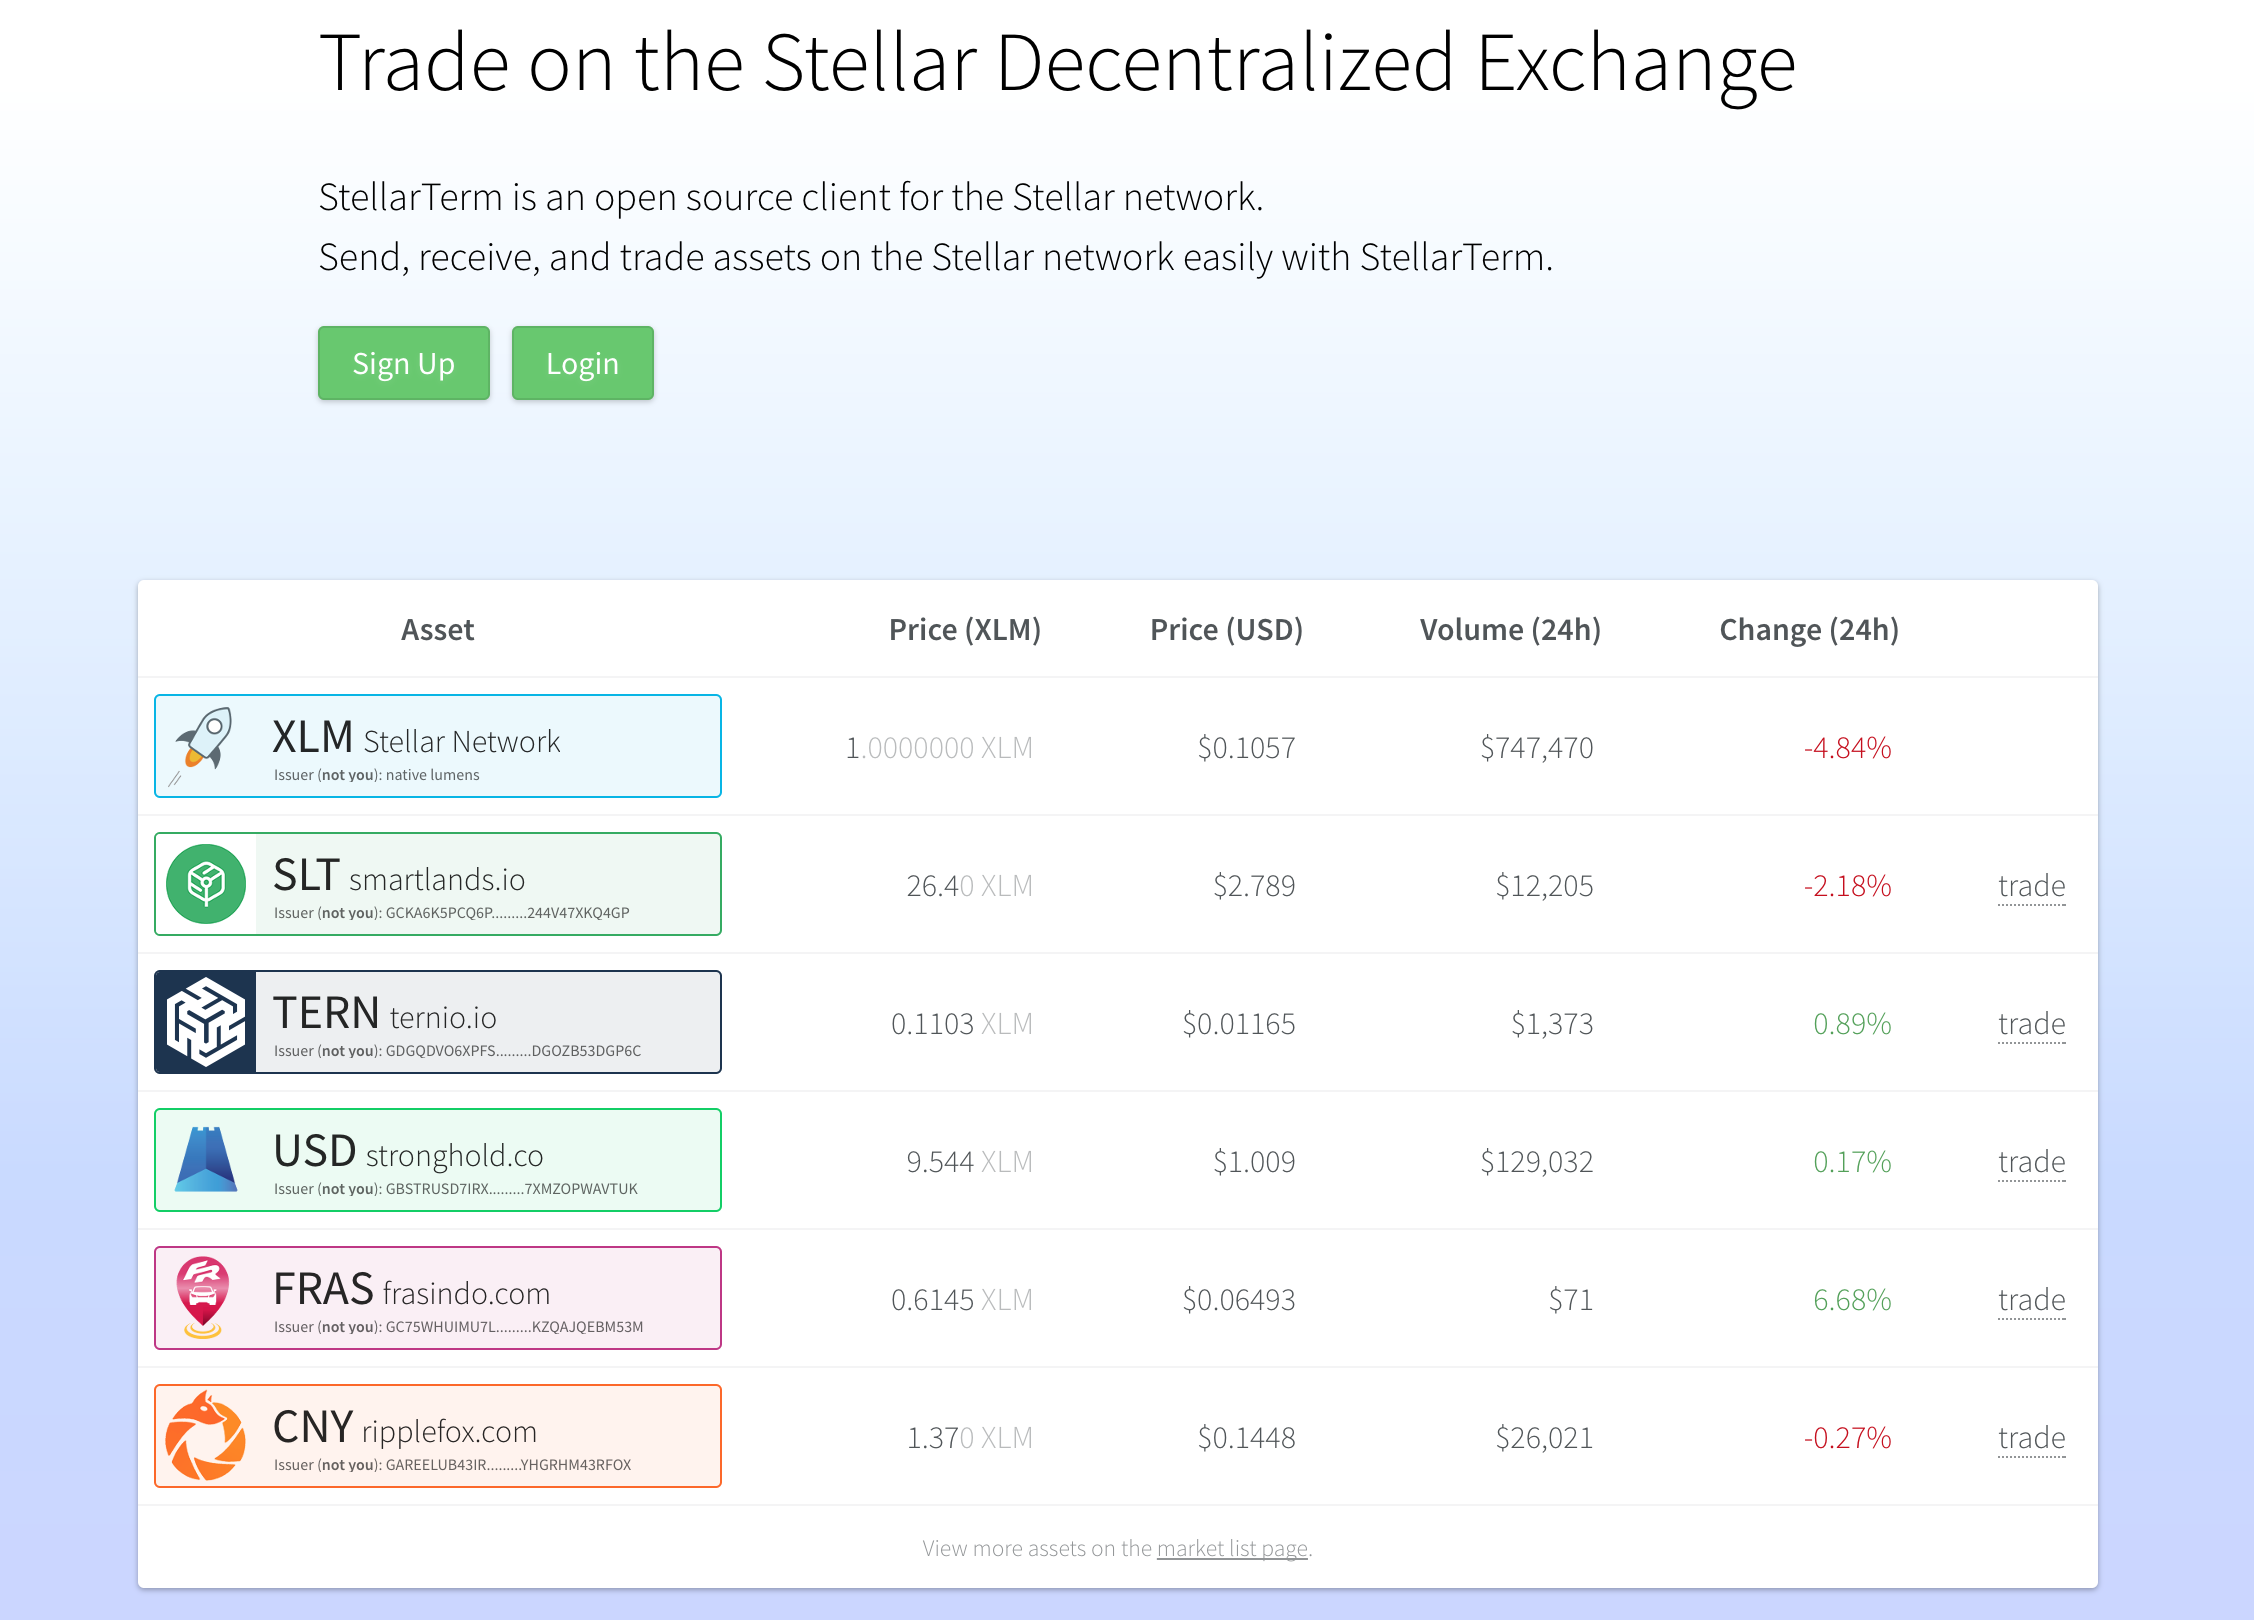 Trade on the Stellar Decentralized Exchange